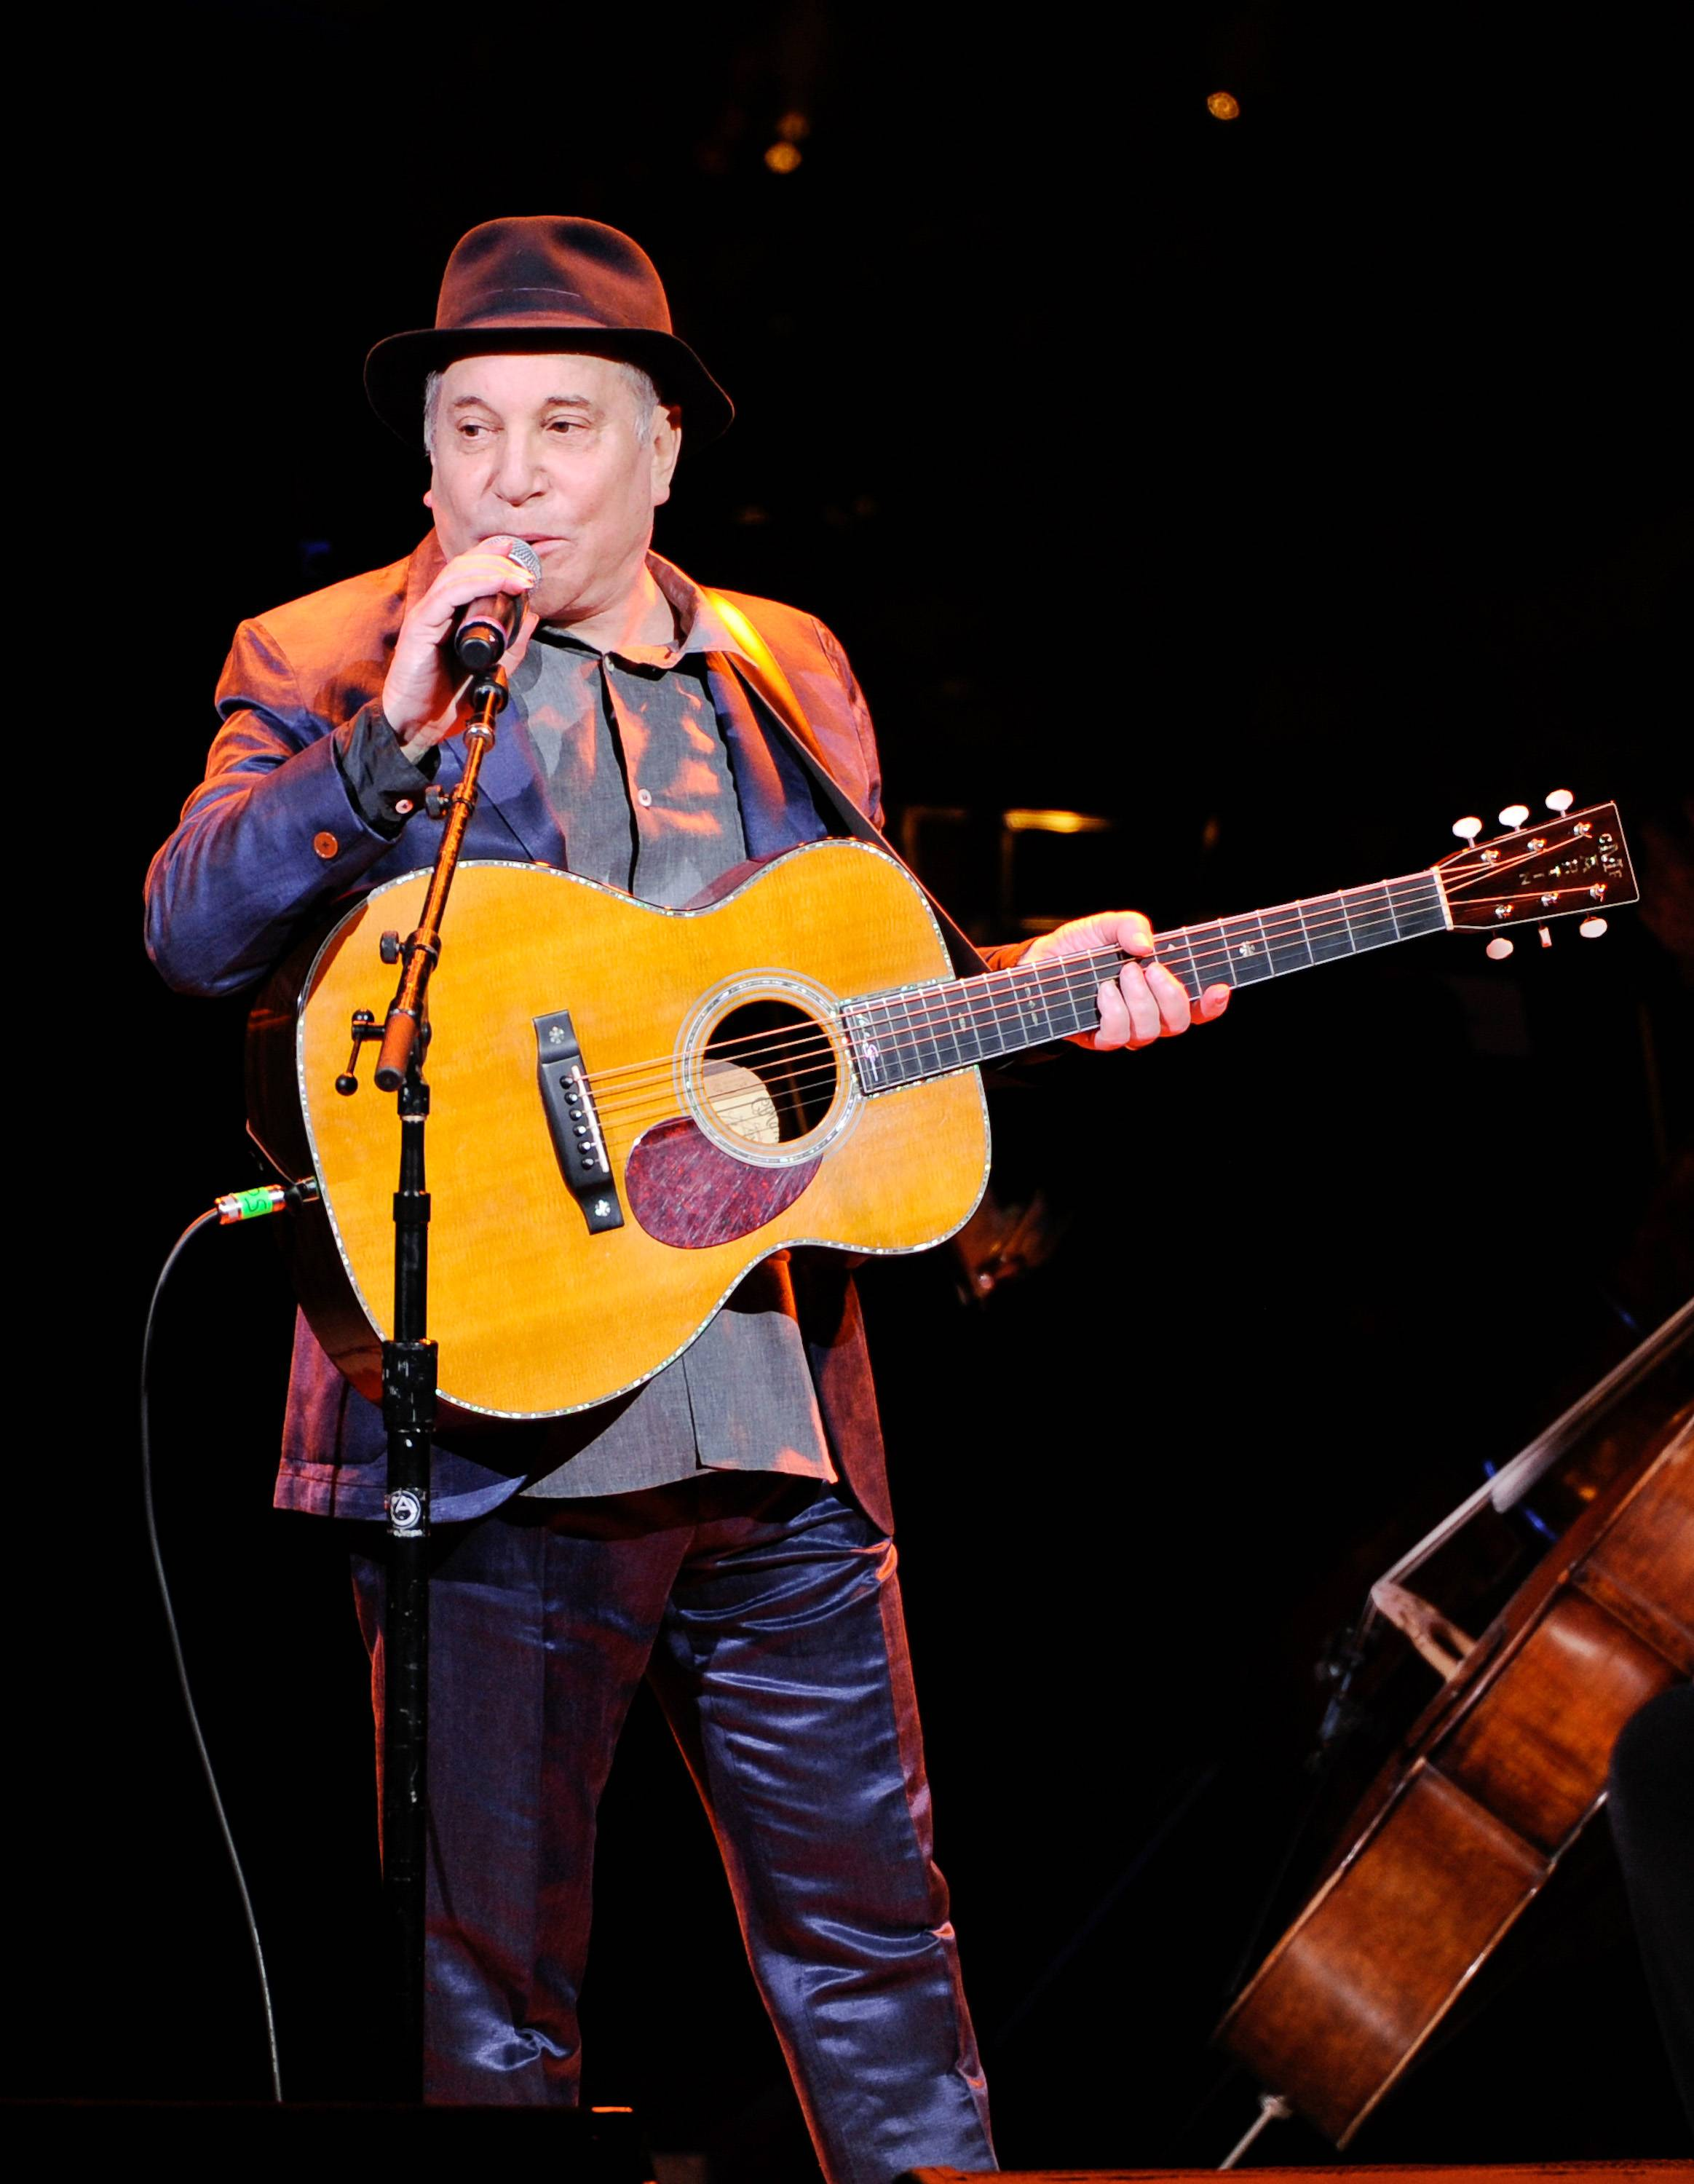 Paul Simon performed more than a dozen songs Wednesday at the Beacon Theatre in New York, where he was honored at the 2014 NYU Steinhardt Vision Award Gala. It was Simon's first public appearance since he and wife Edie Brickell were arrested on disorderly conduct charges.